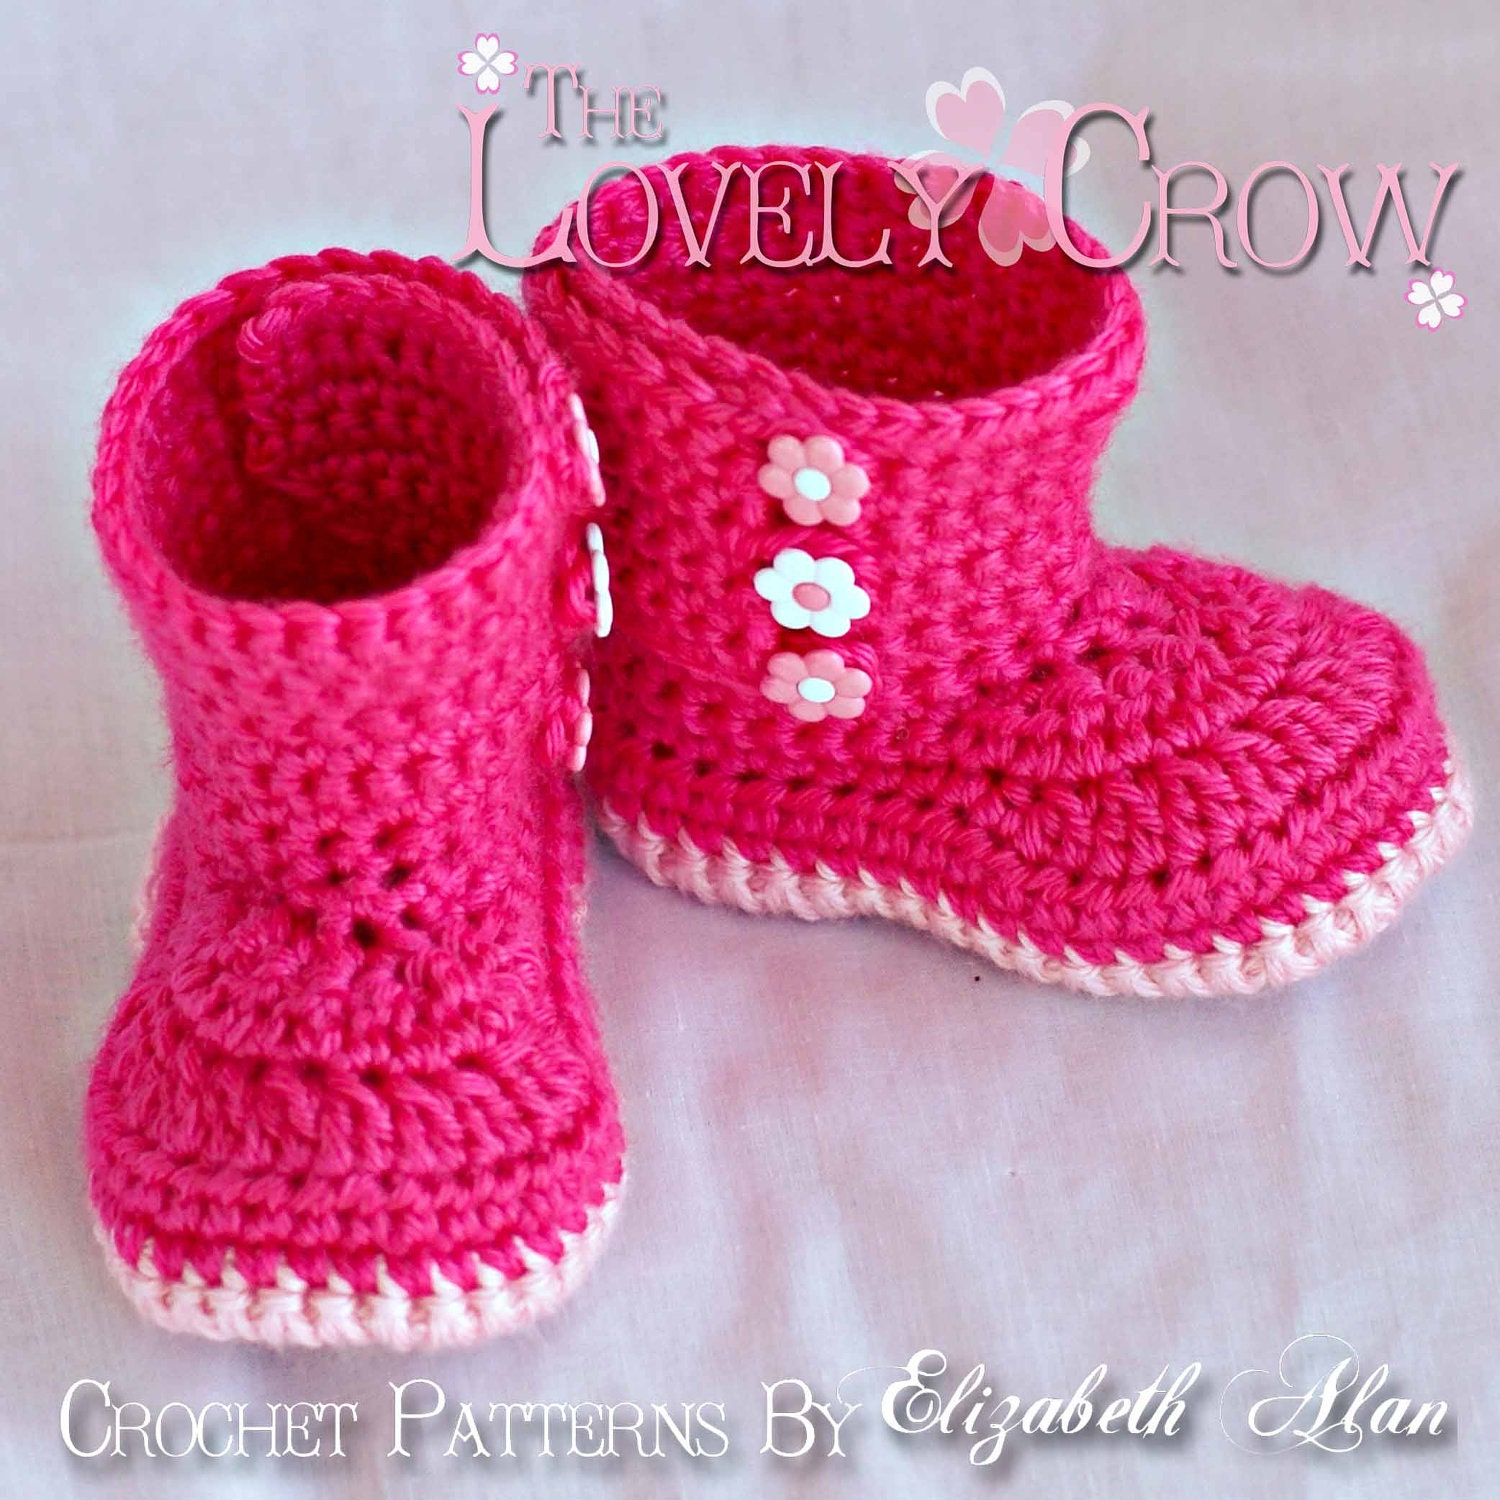 Free Crochet Pattern Baby Lion Booties : Booties Crochet Pattern Boots for BABY GARDEN BOOTS digital